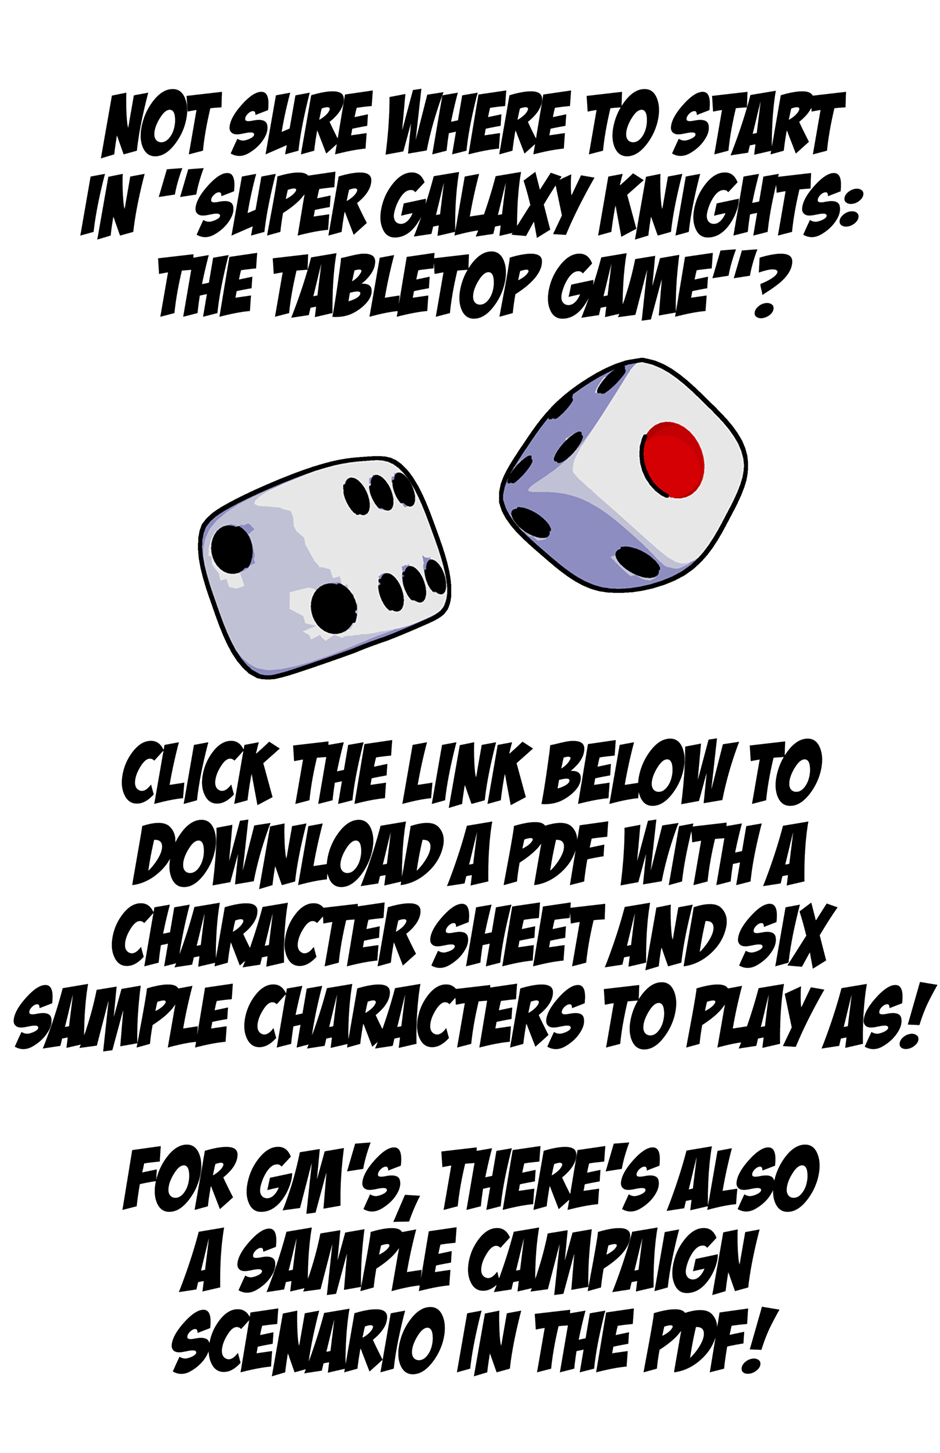 Characters and Scenarios! Super Galaxy Knights: The Tabletop Game!